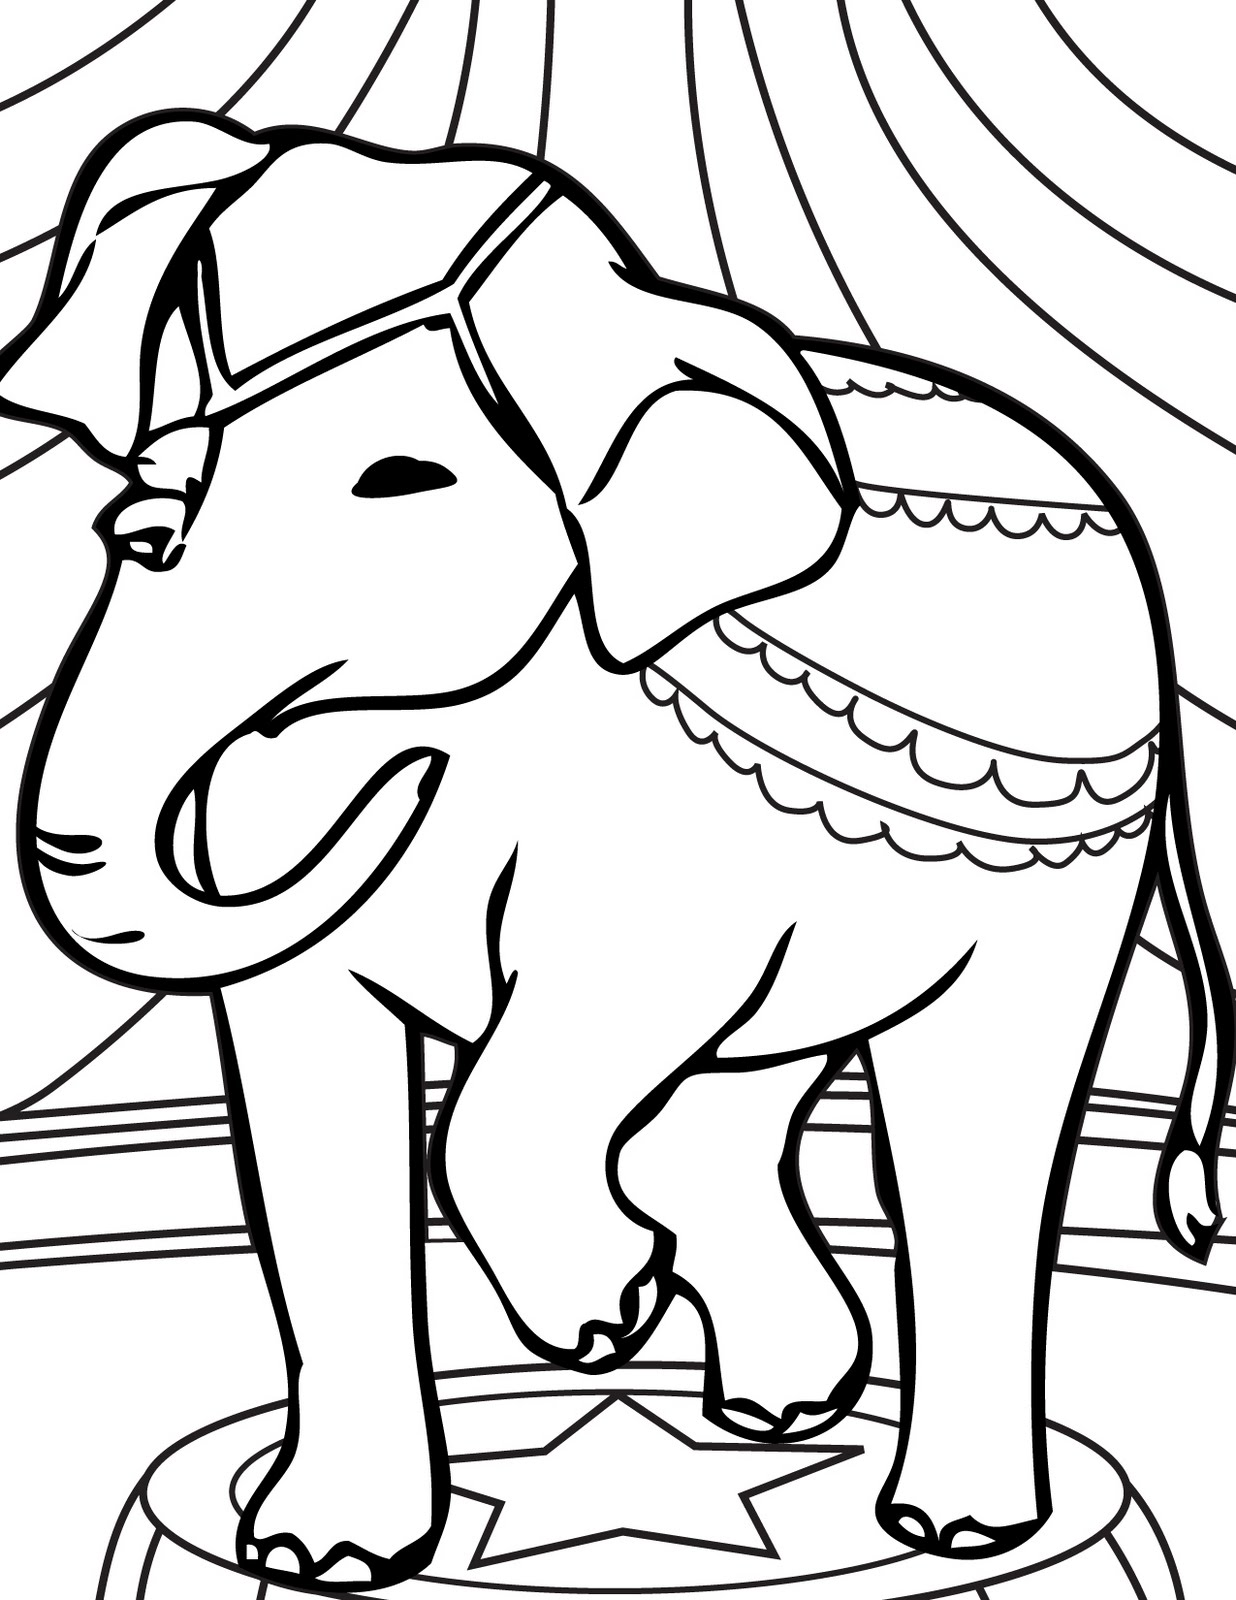 1236x1600 New Circus Pictures To Color Cool Gallery Ideas Coloring Pages